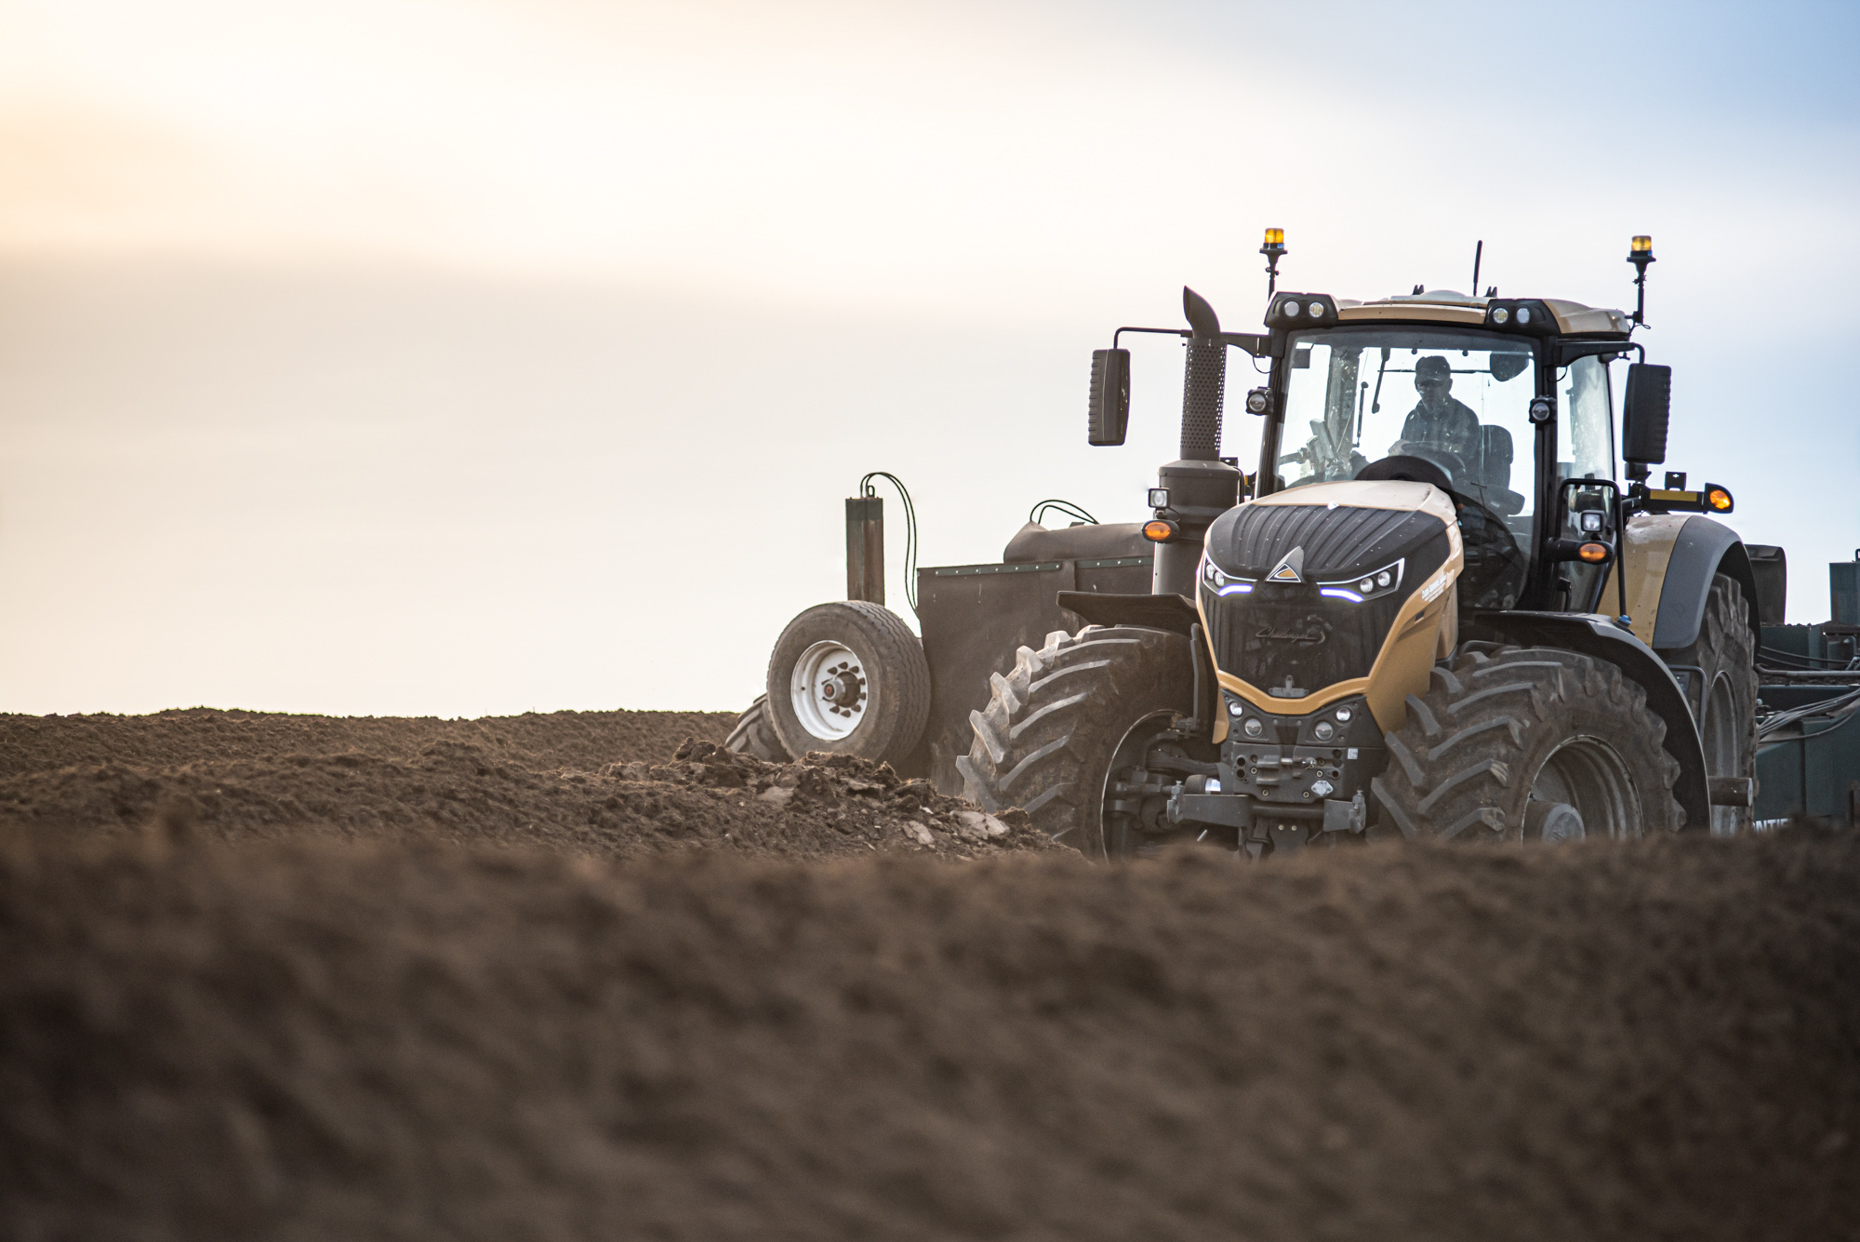 Tractor in field turning compost rows. Isaac Miller Photography  | Agriculture & Industry Photographer  |  Commercial & Editorial photography  |   Missoula + San Antonio